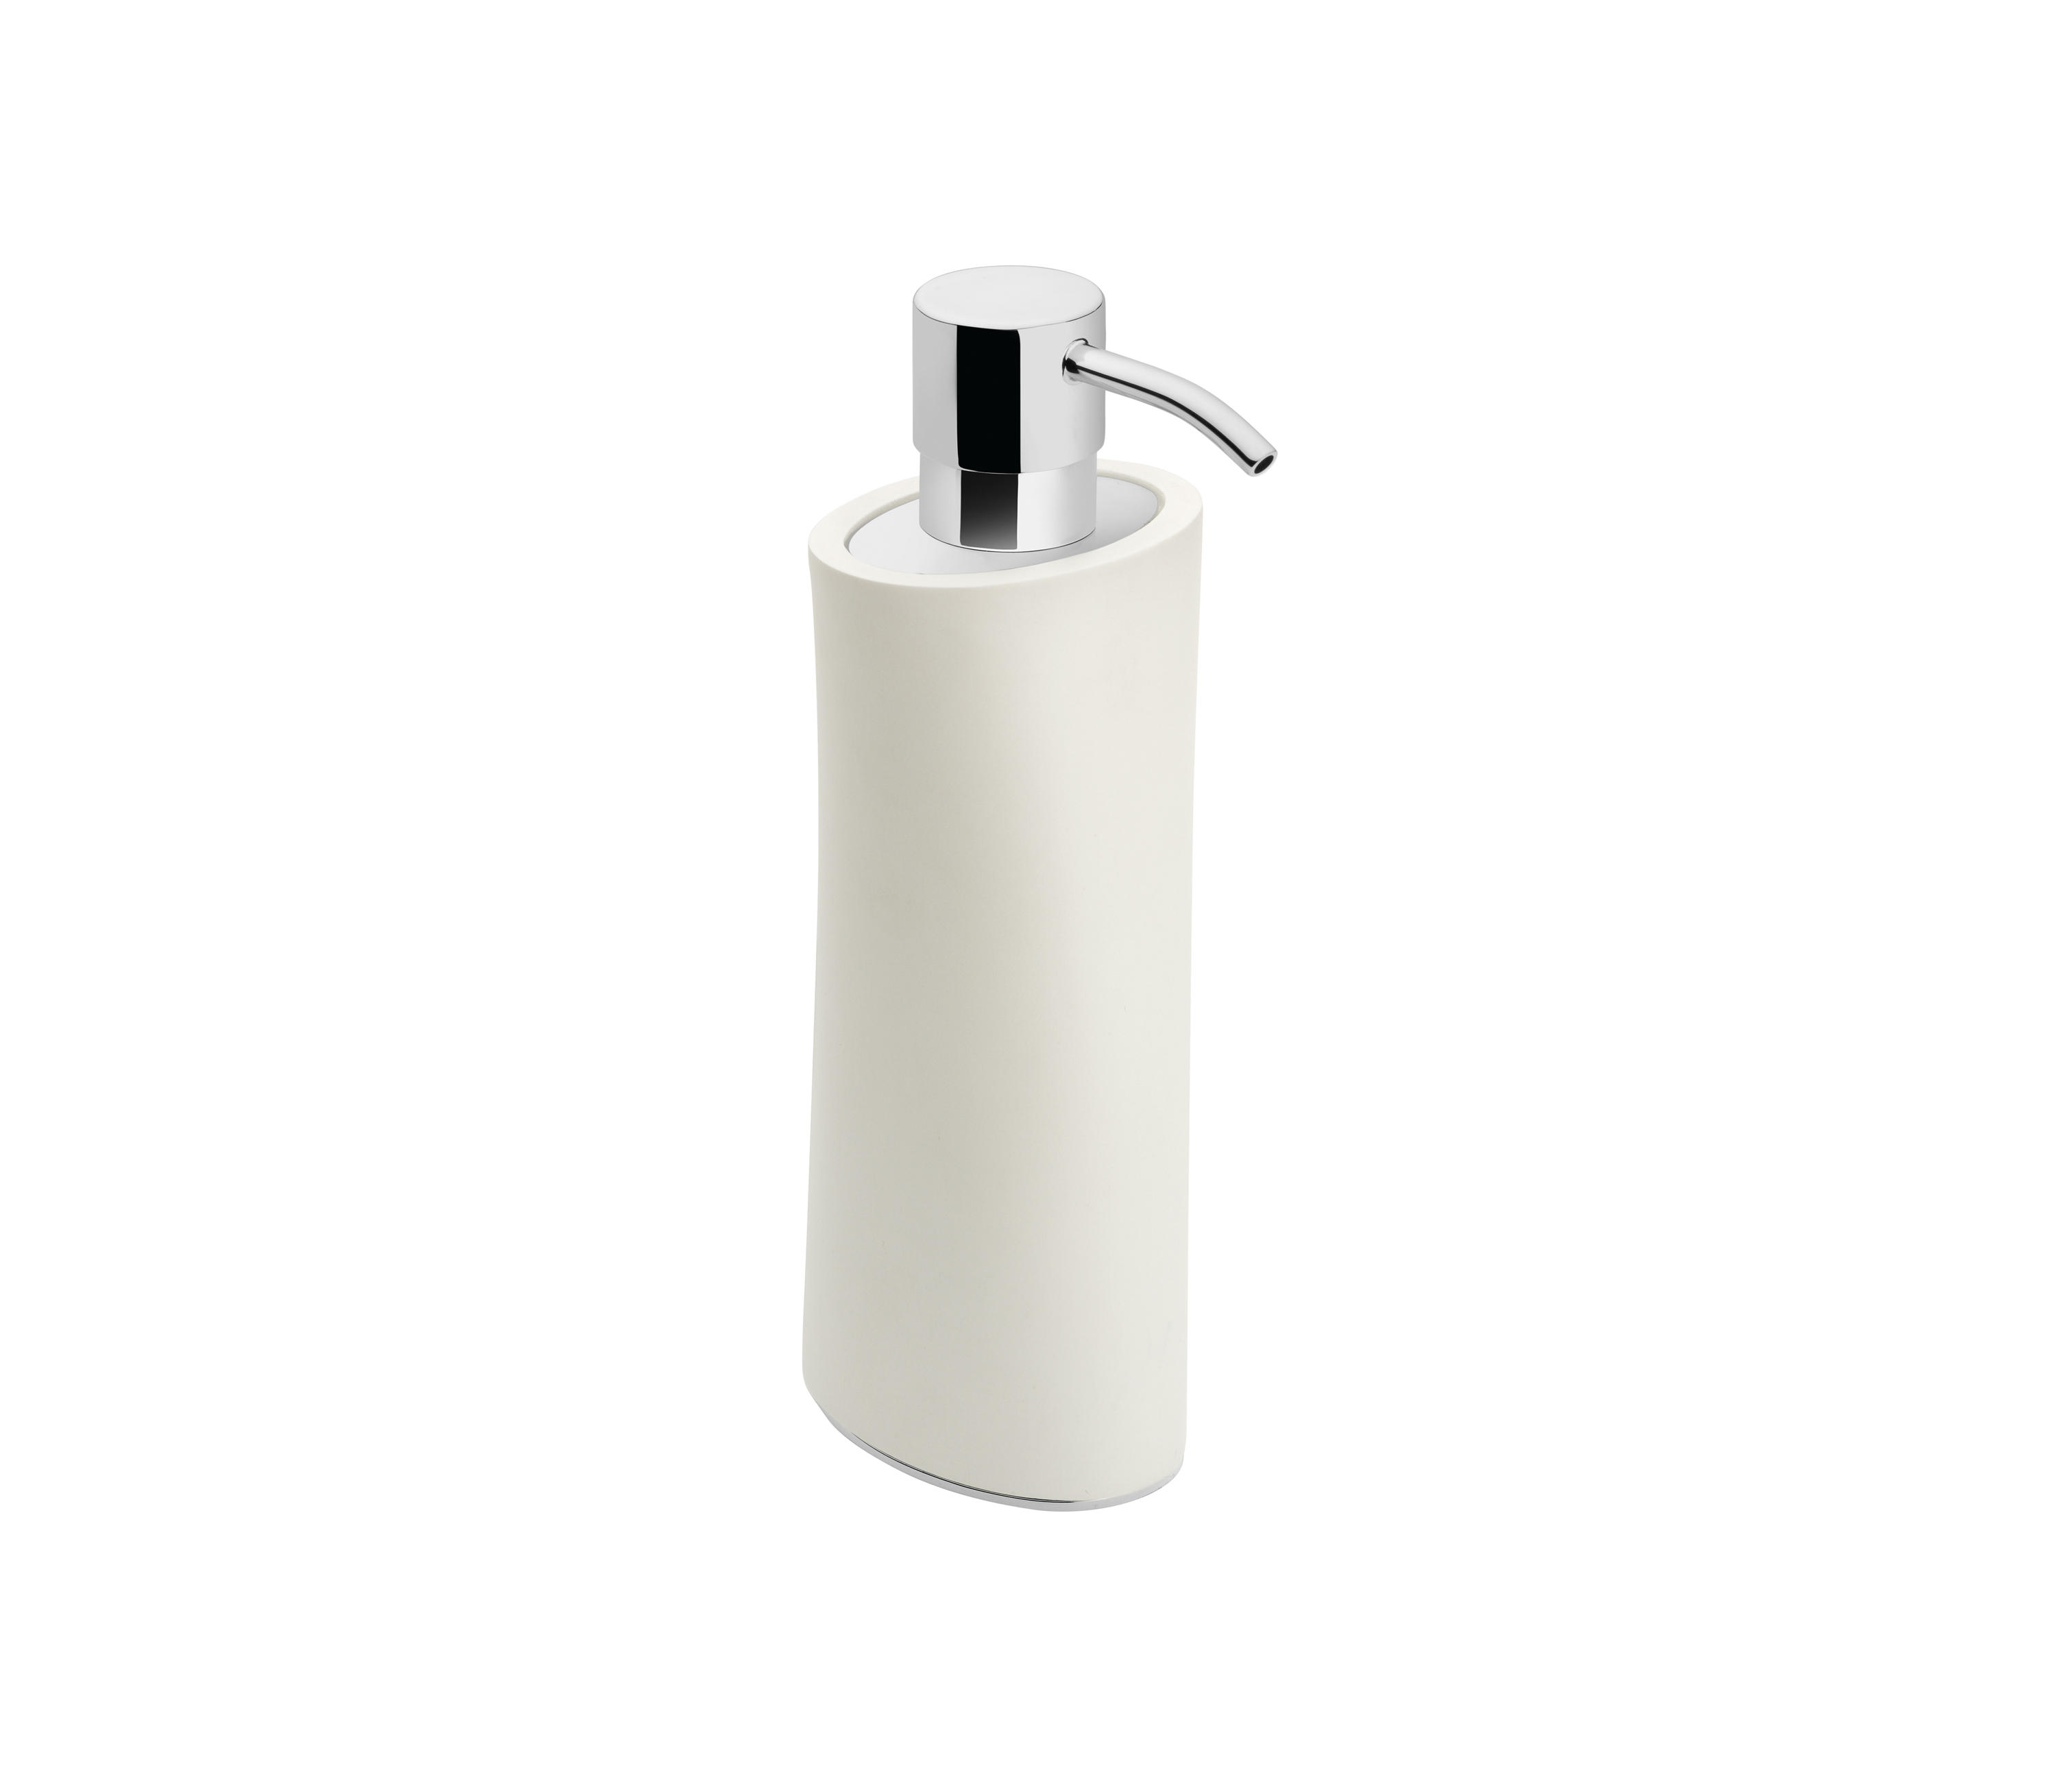 Belle Free Standing Soap Dispenser Soap Dispensers From Pom D Or Architonic